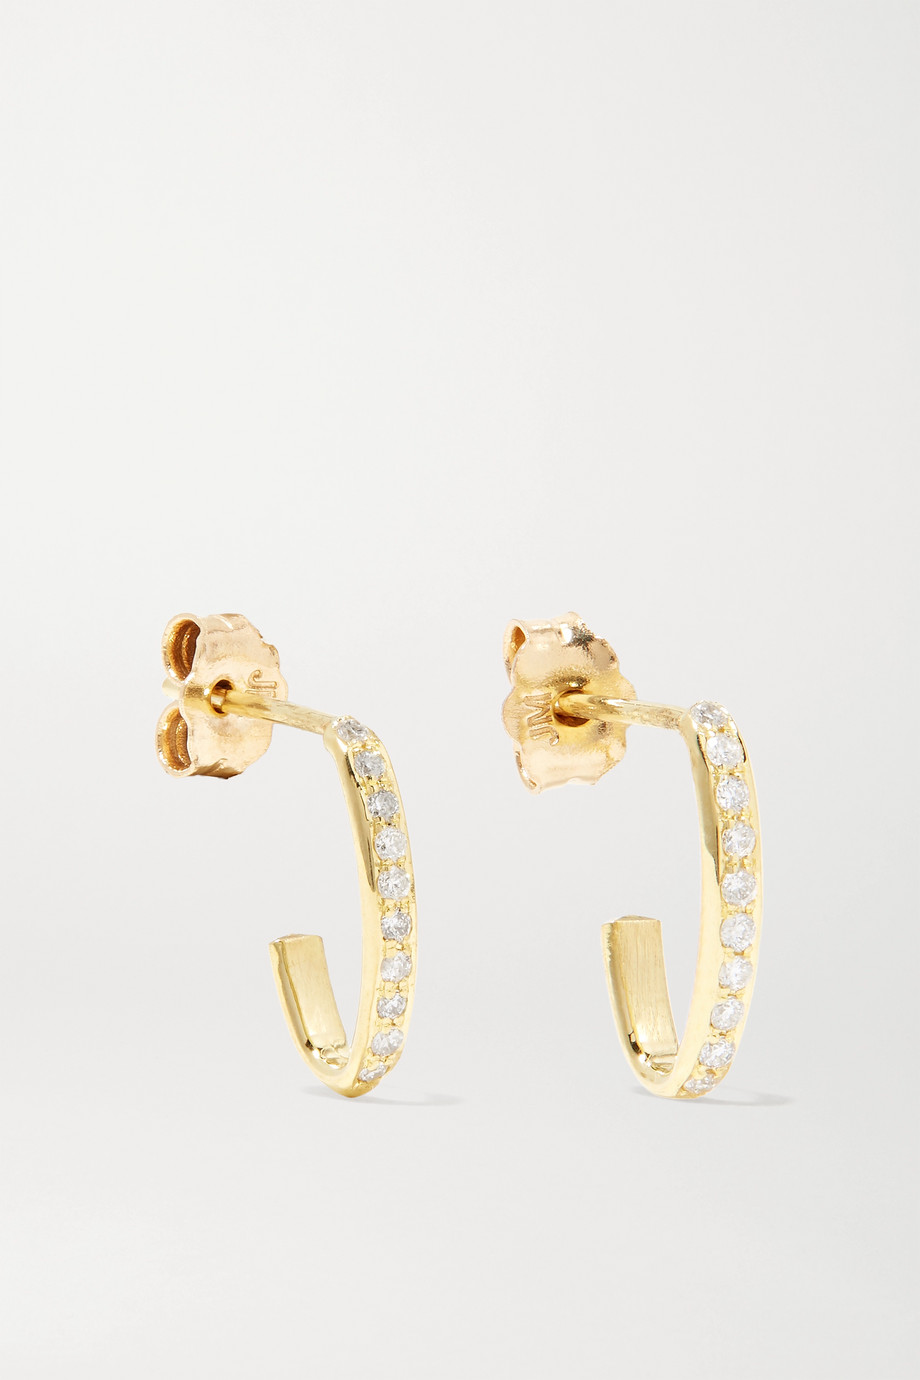 JENNIFER MEYER Edith 18-karat gold diamond hoop earrings